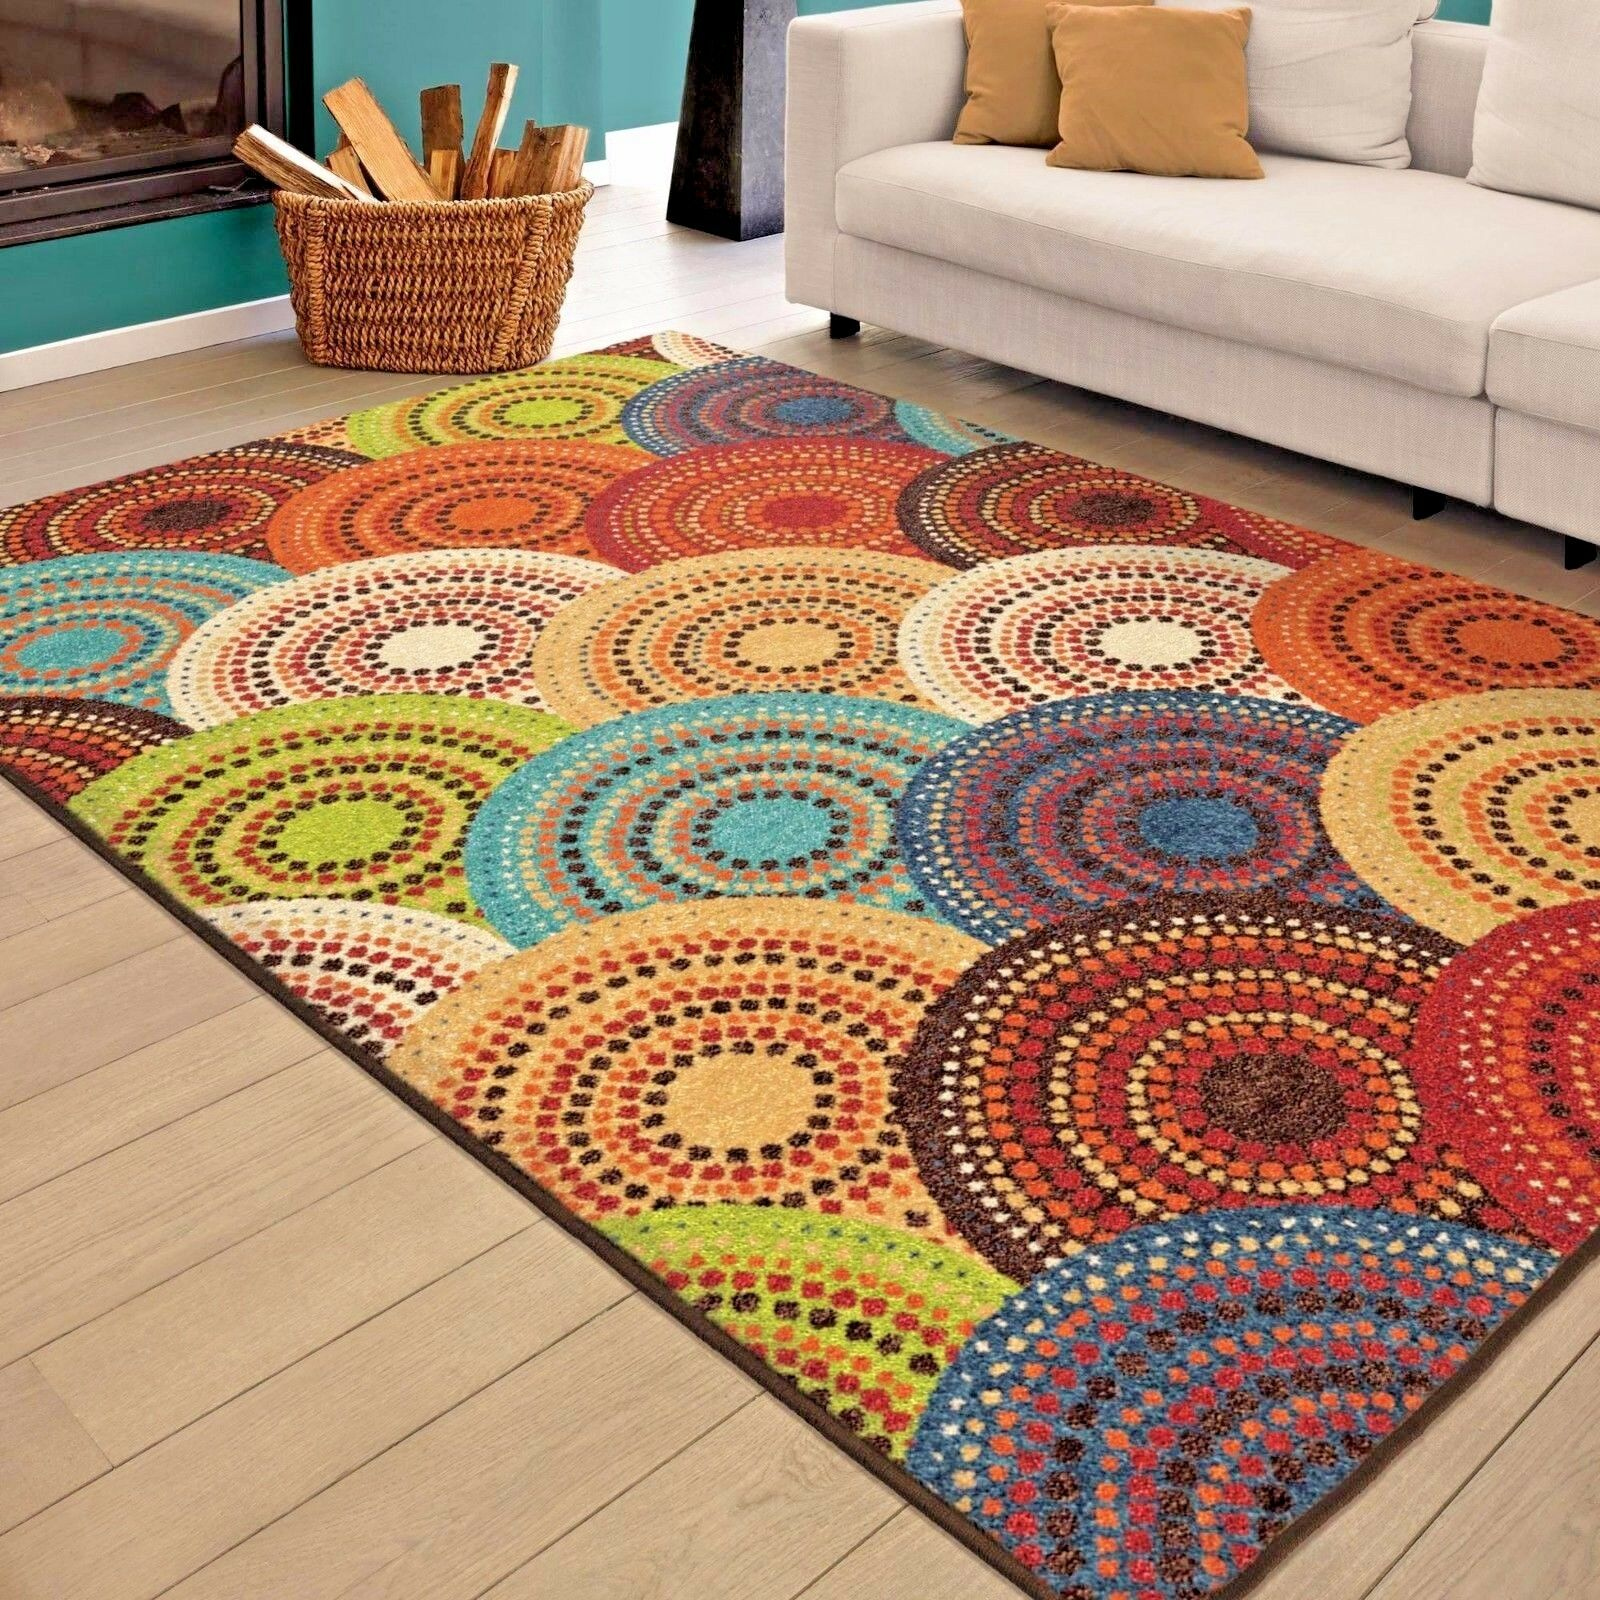 rug for floor awesome area rugs living grey in on sale room